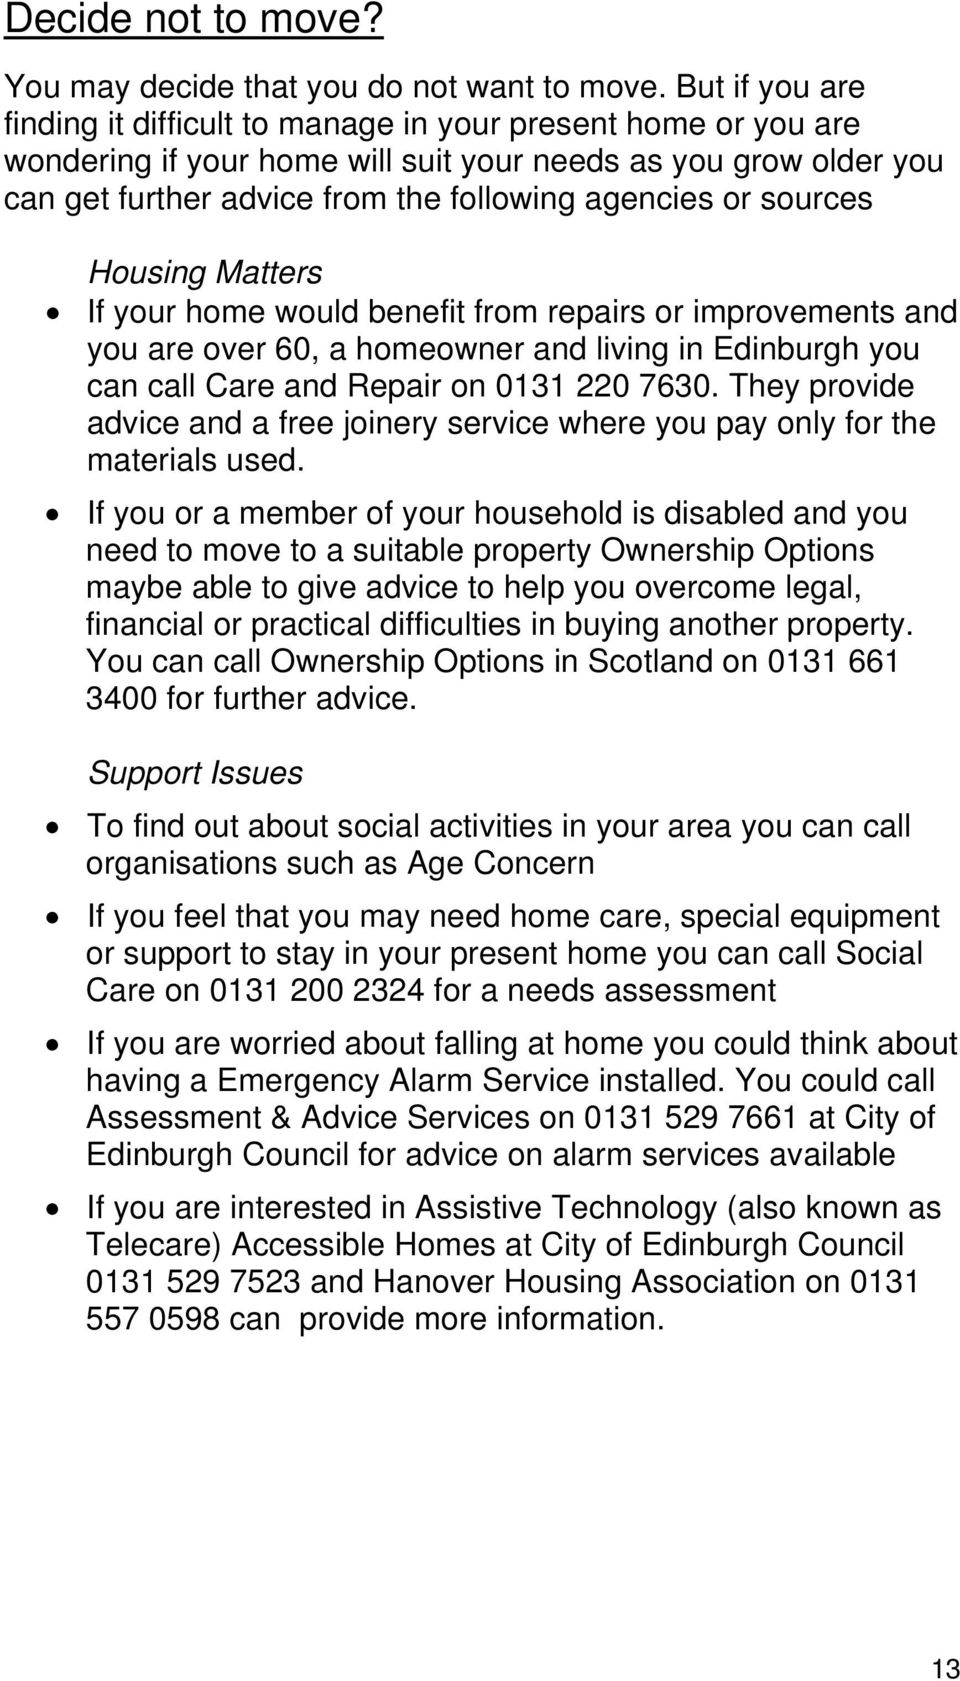 sources Housing Matters If your home would benefit from repairs or improvements and you are over 60, a homeowner and living in Edinburgh you can call Care and Repair on 0131 220 7630.